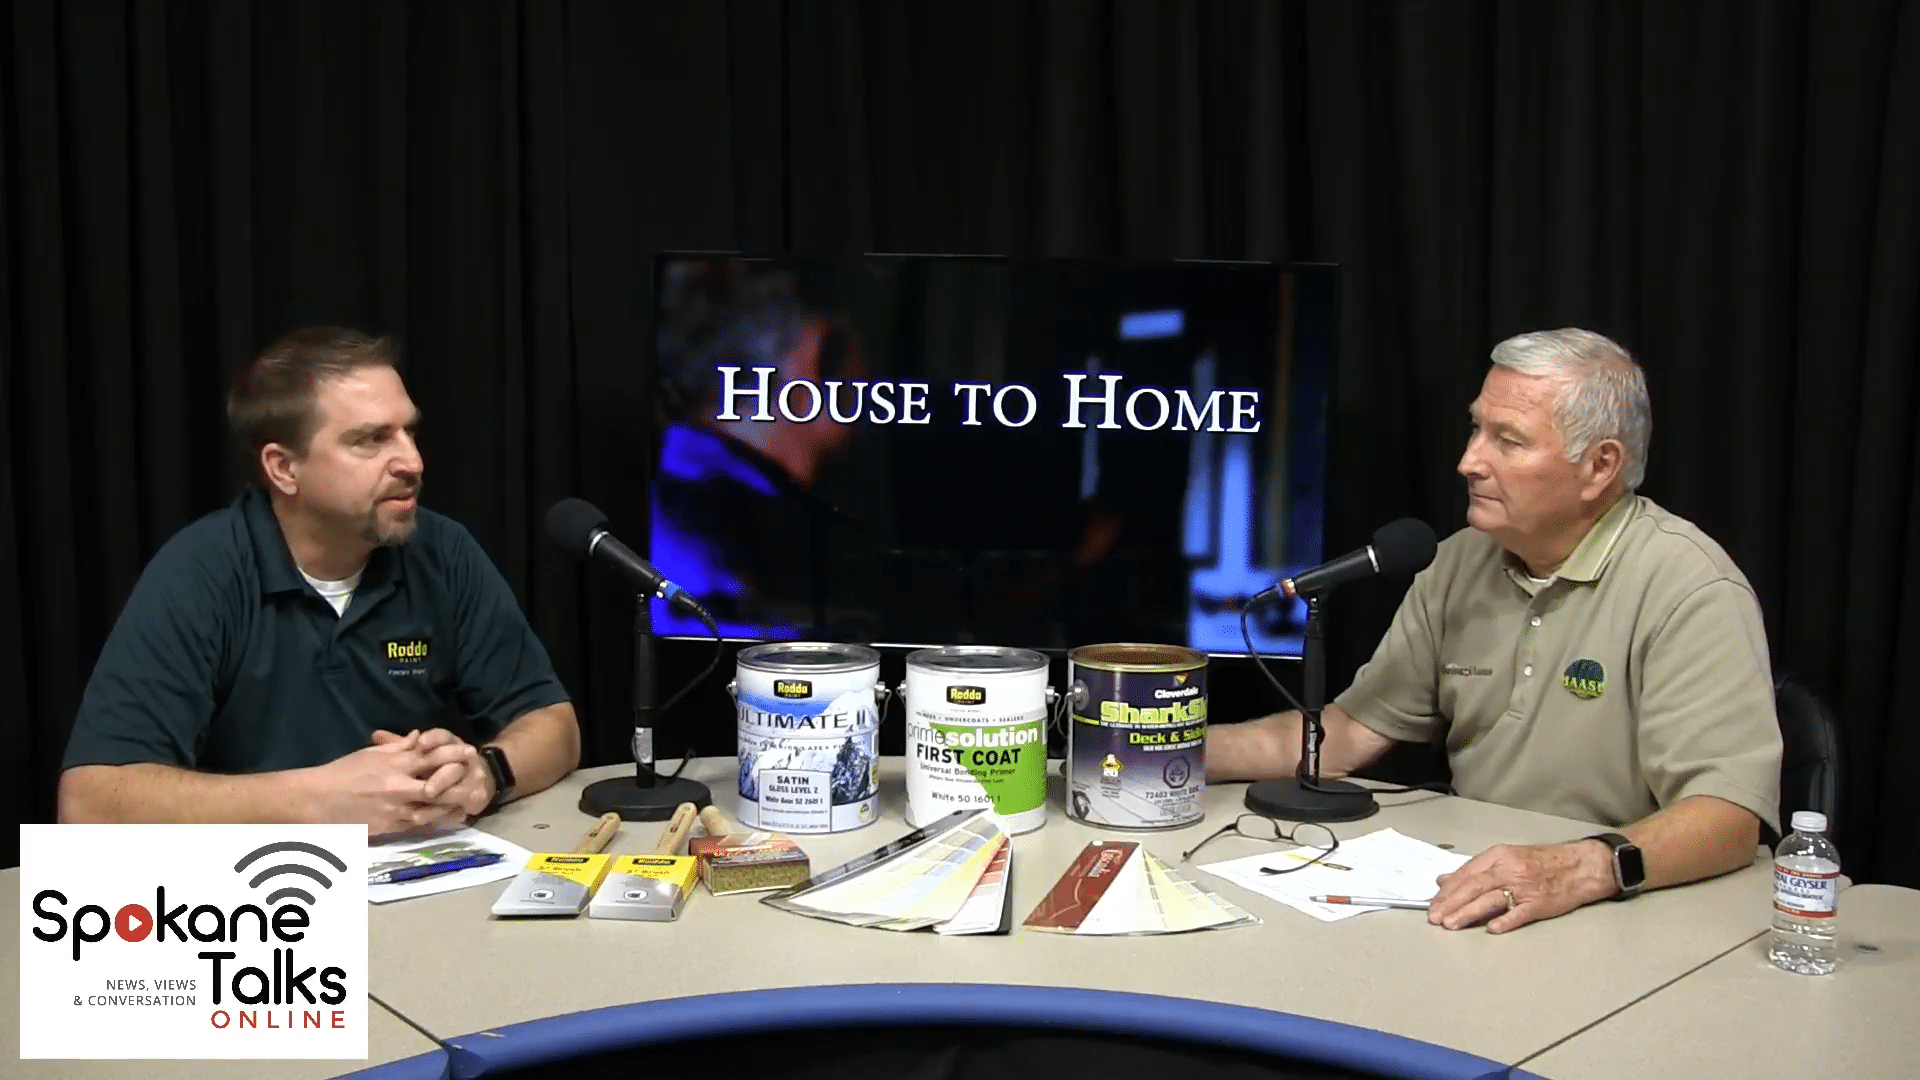 House to Home with Host: Clyde Haase and Special Guest: Brad Gisolo - Spokane Talks Media